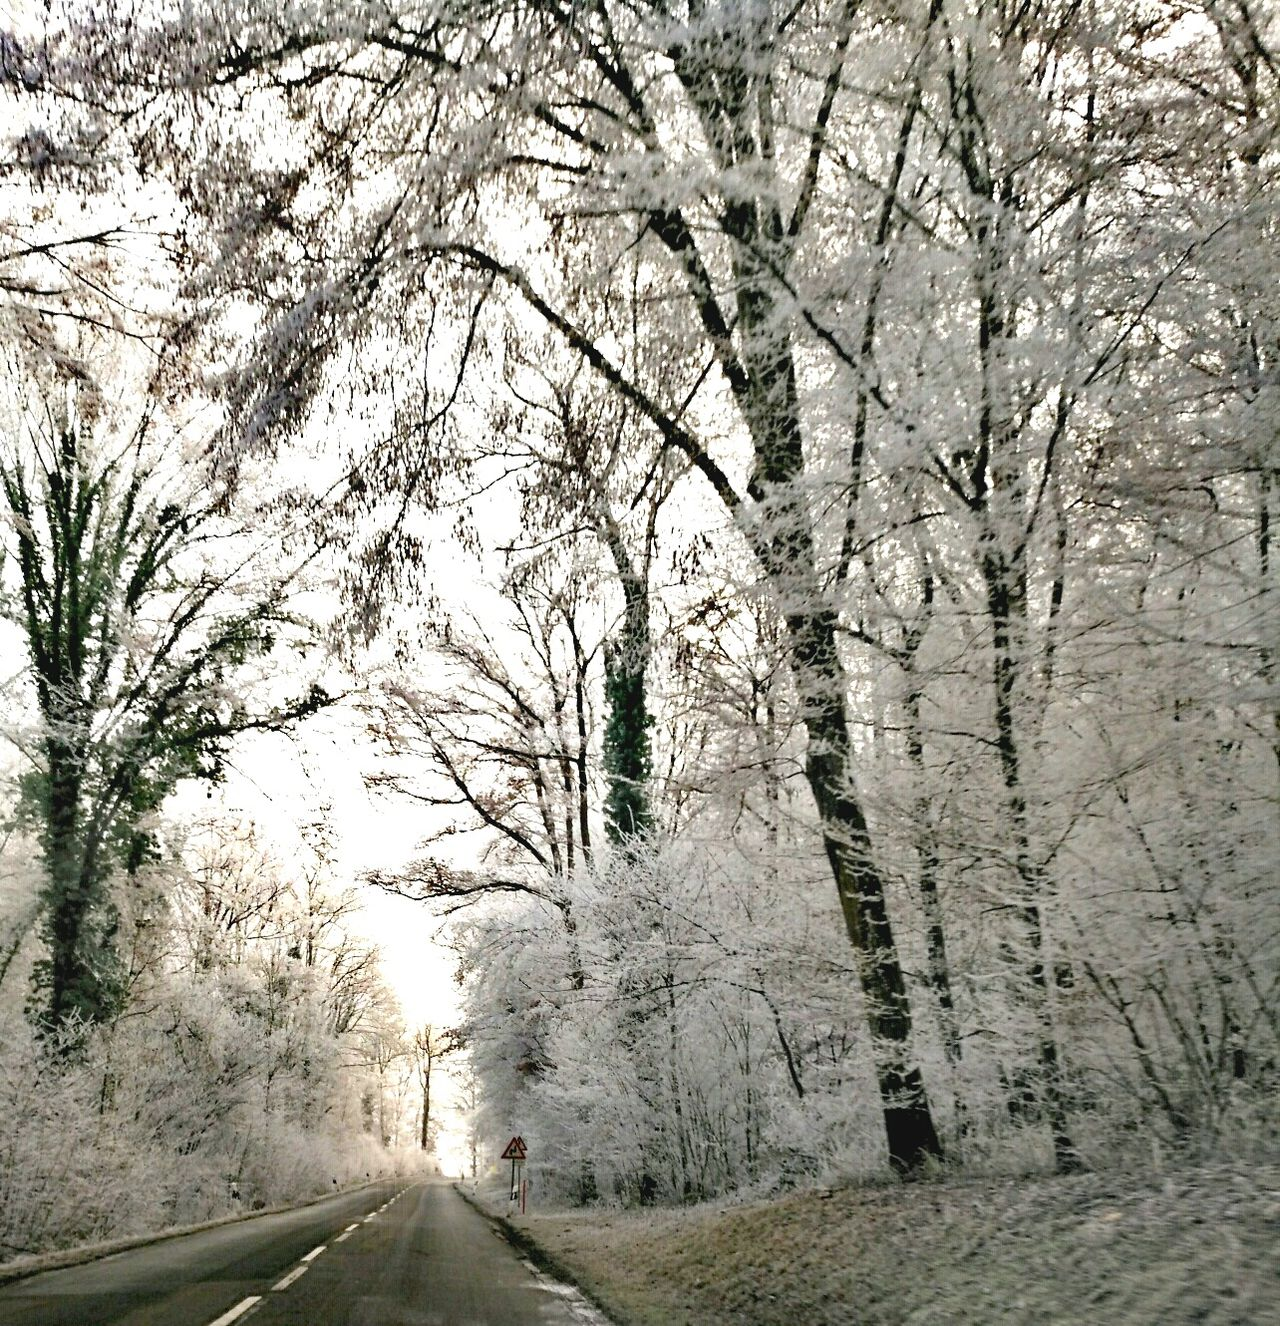 Nature Beauty In Nature Road Cold Weather Cold Days Snow Forest No People EyeEmNewHere Nicepic Awesome Nature Snow Cold Temperature Idyllic Winter Street Awe Cold Winter ❄⛄ Outdoors